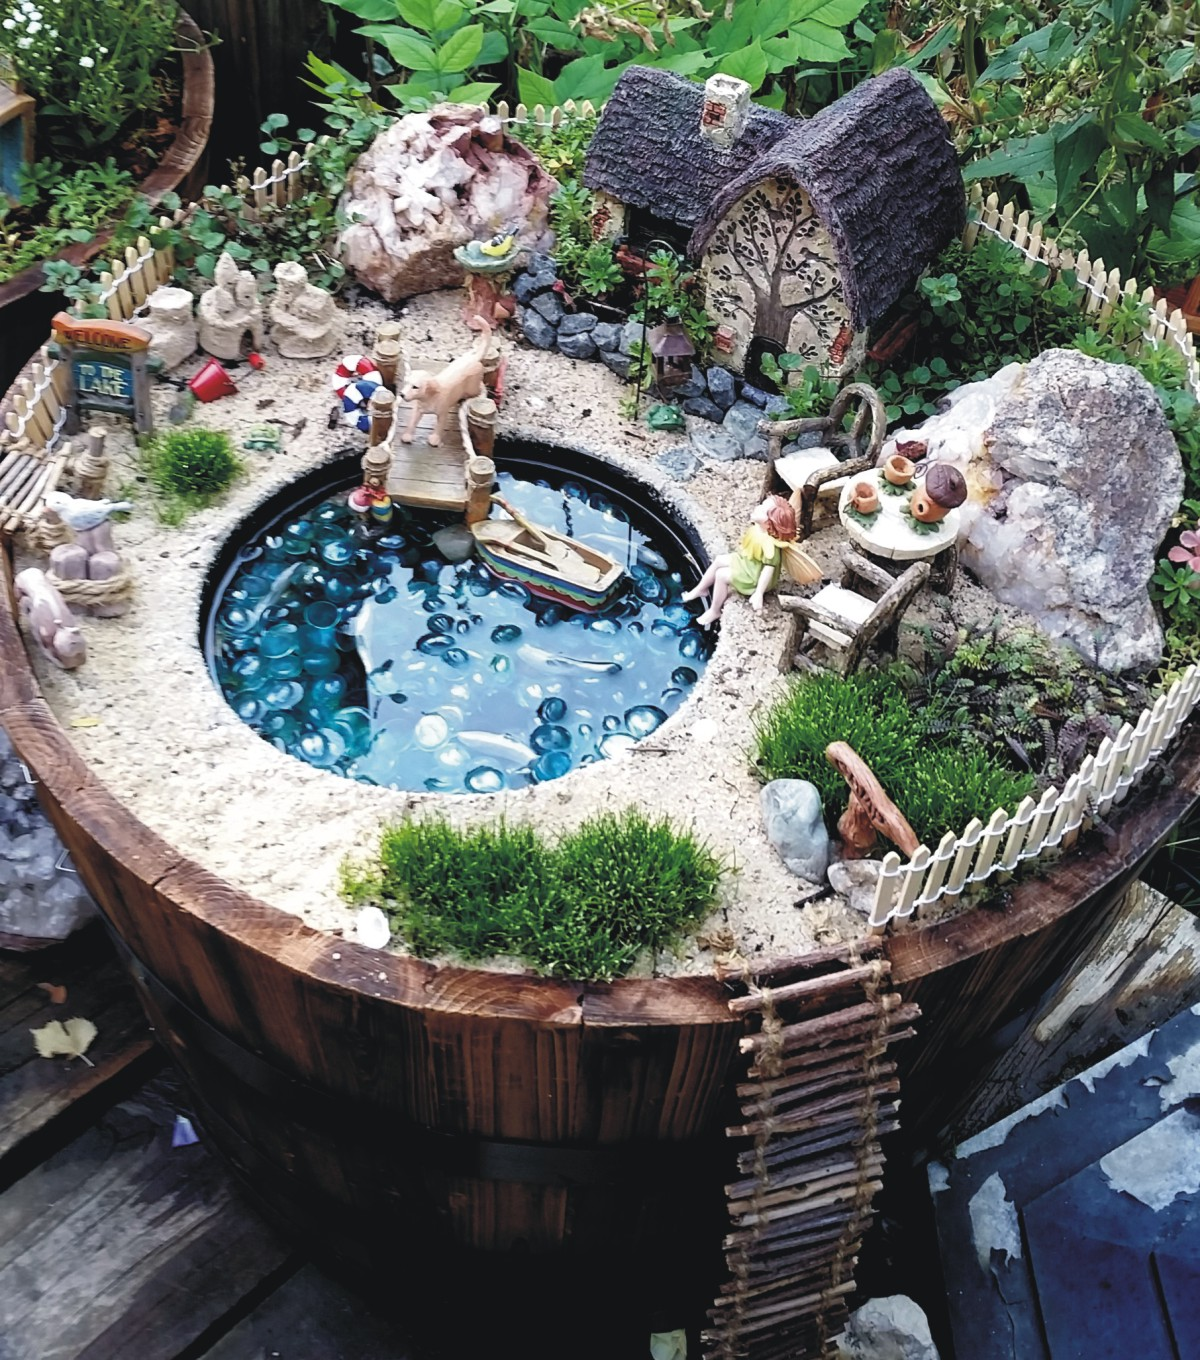 22 amazing fairy garden ideas one should know best of diy ideas - Diy Fairy Garden Ideas